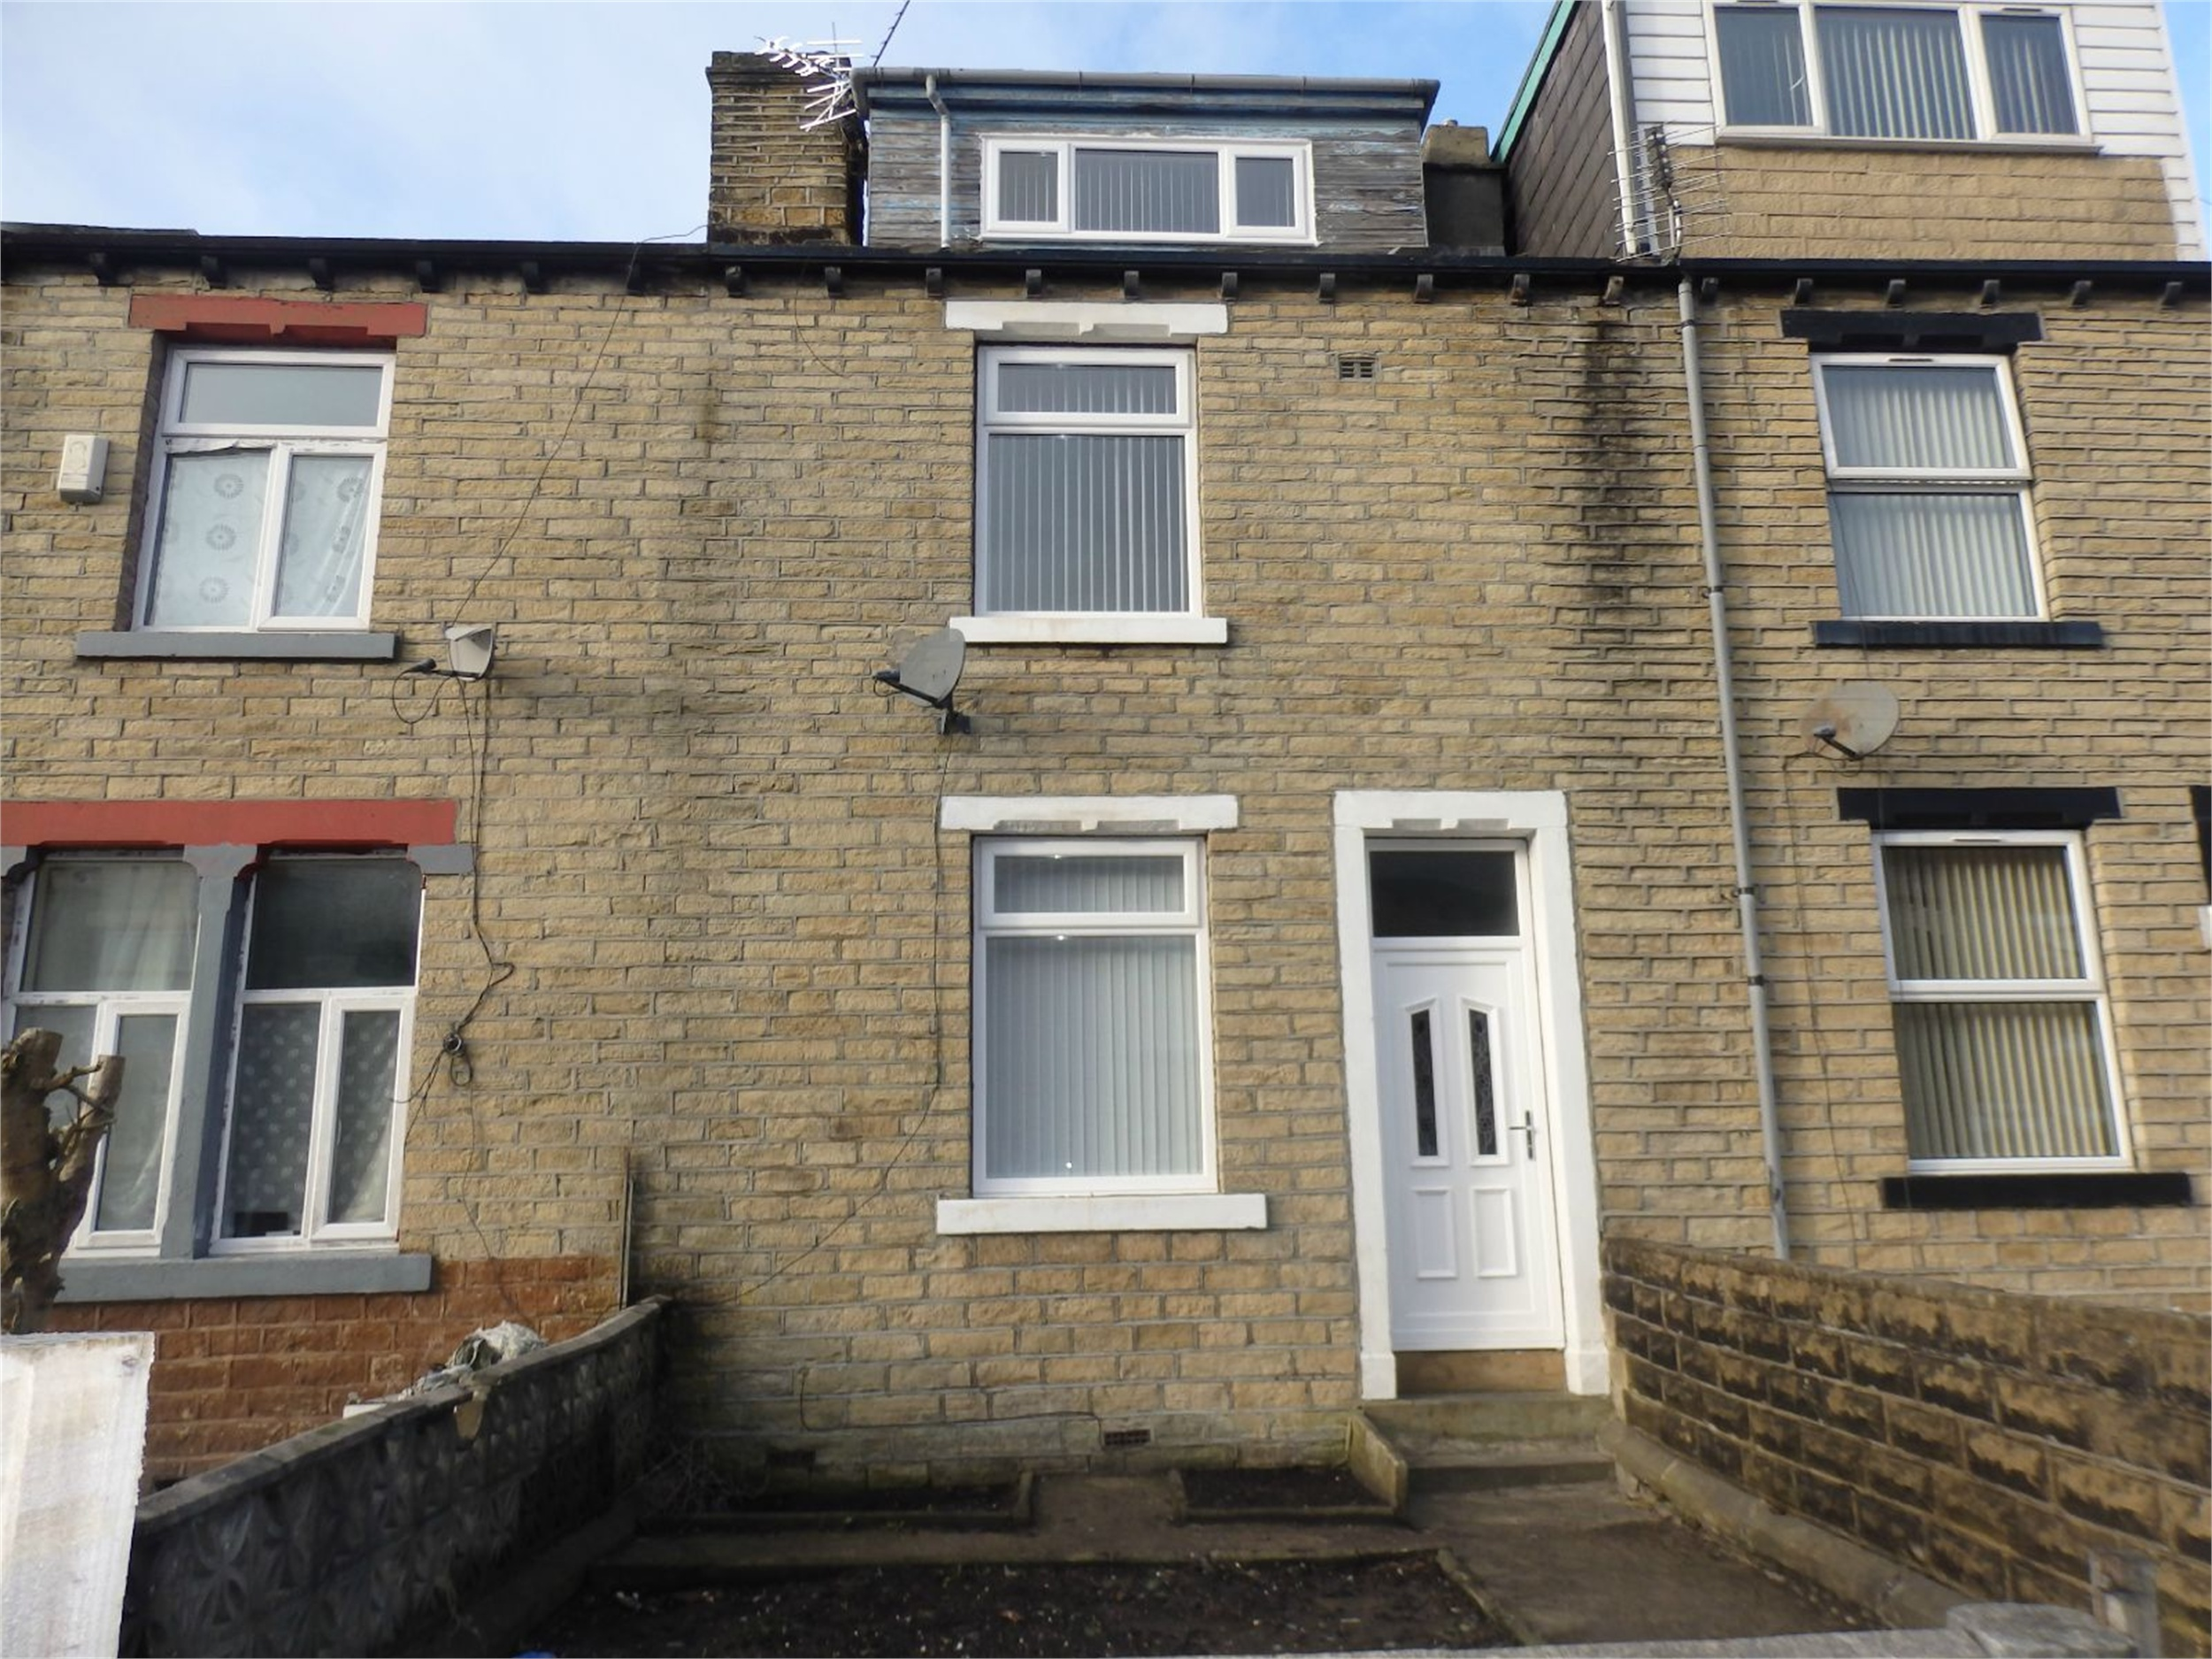 Yorkshire Terrace: Whitegates Halifax 3 Bedroom House For Sale In Oak Terrace